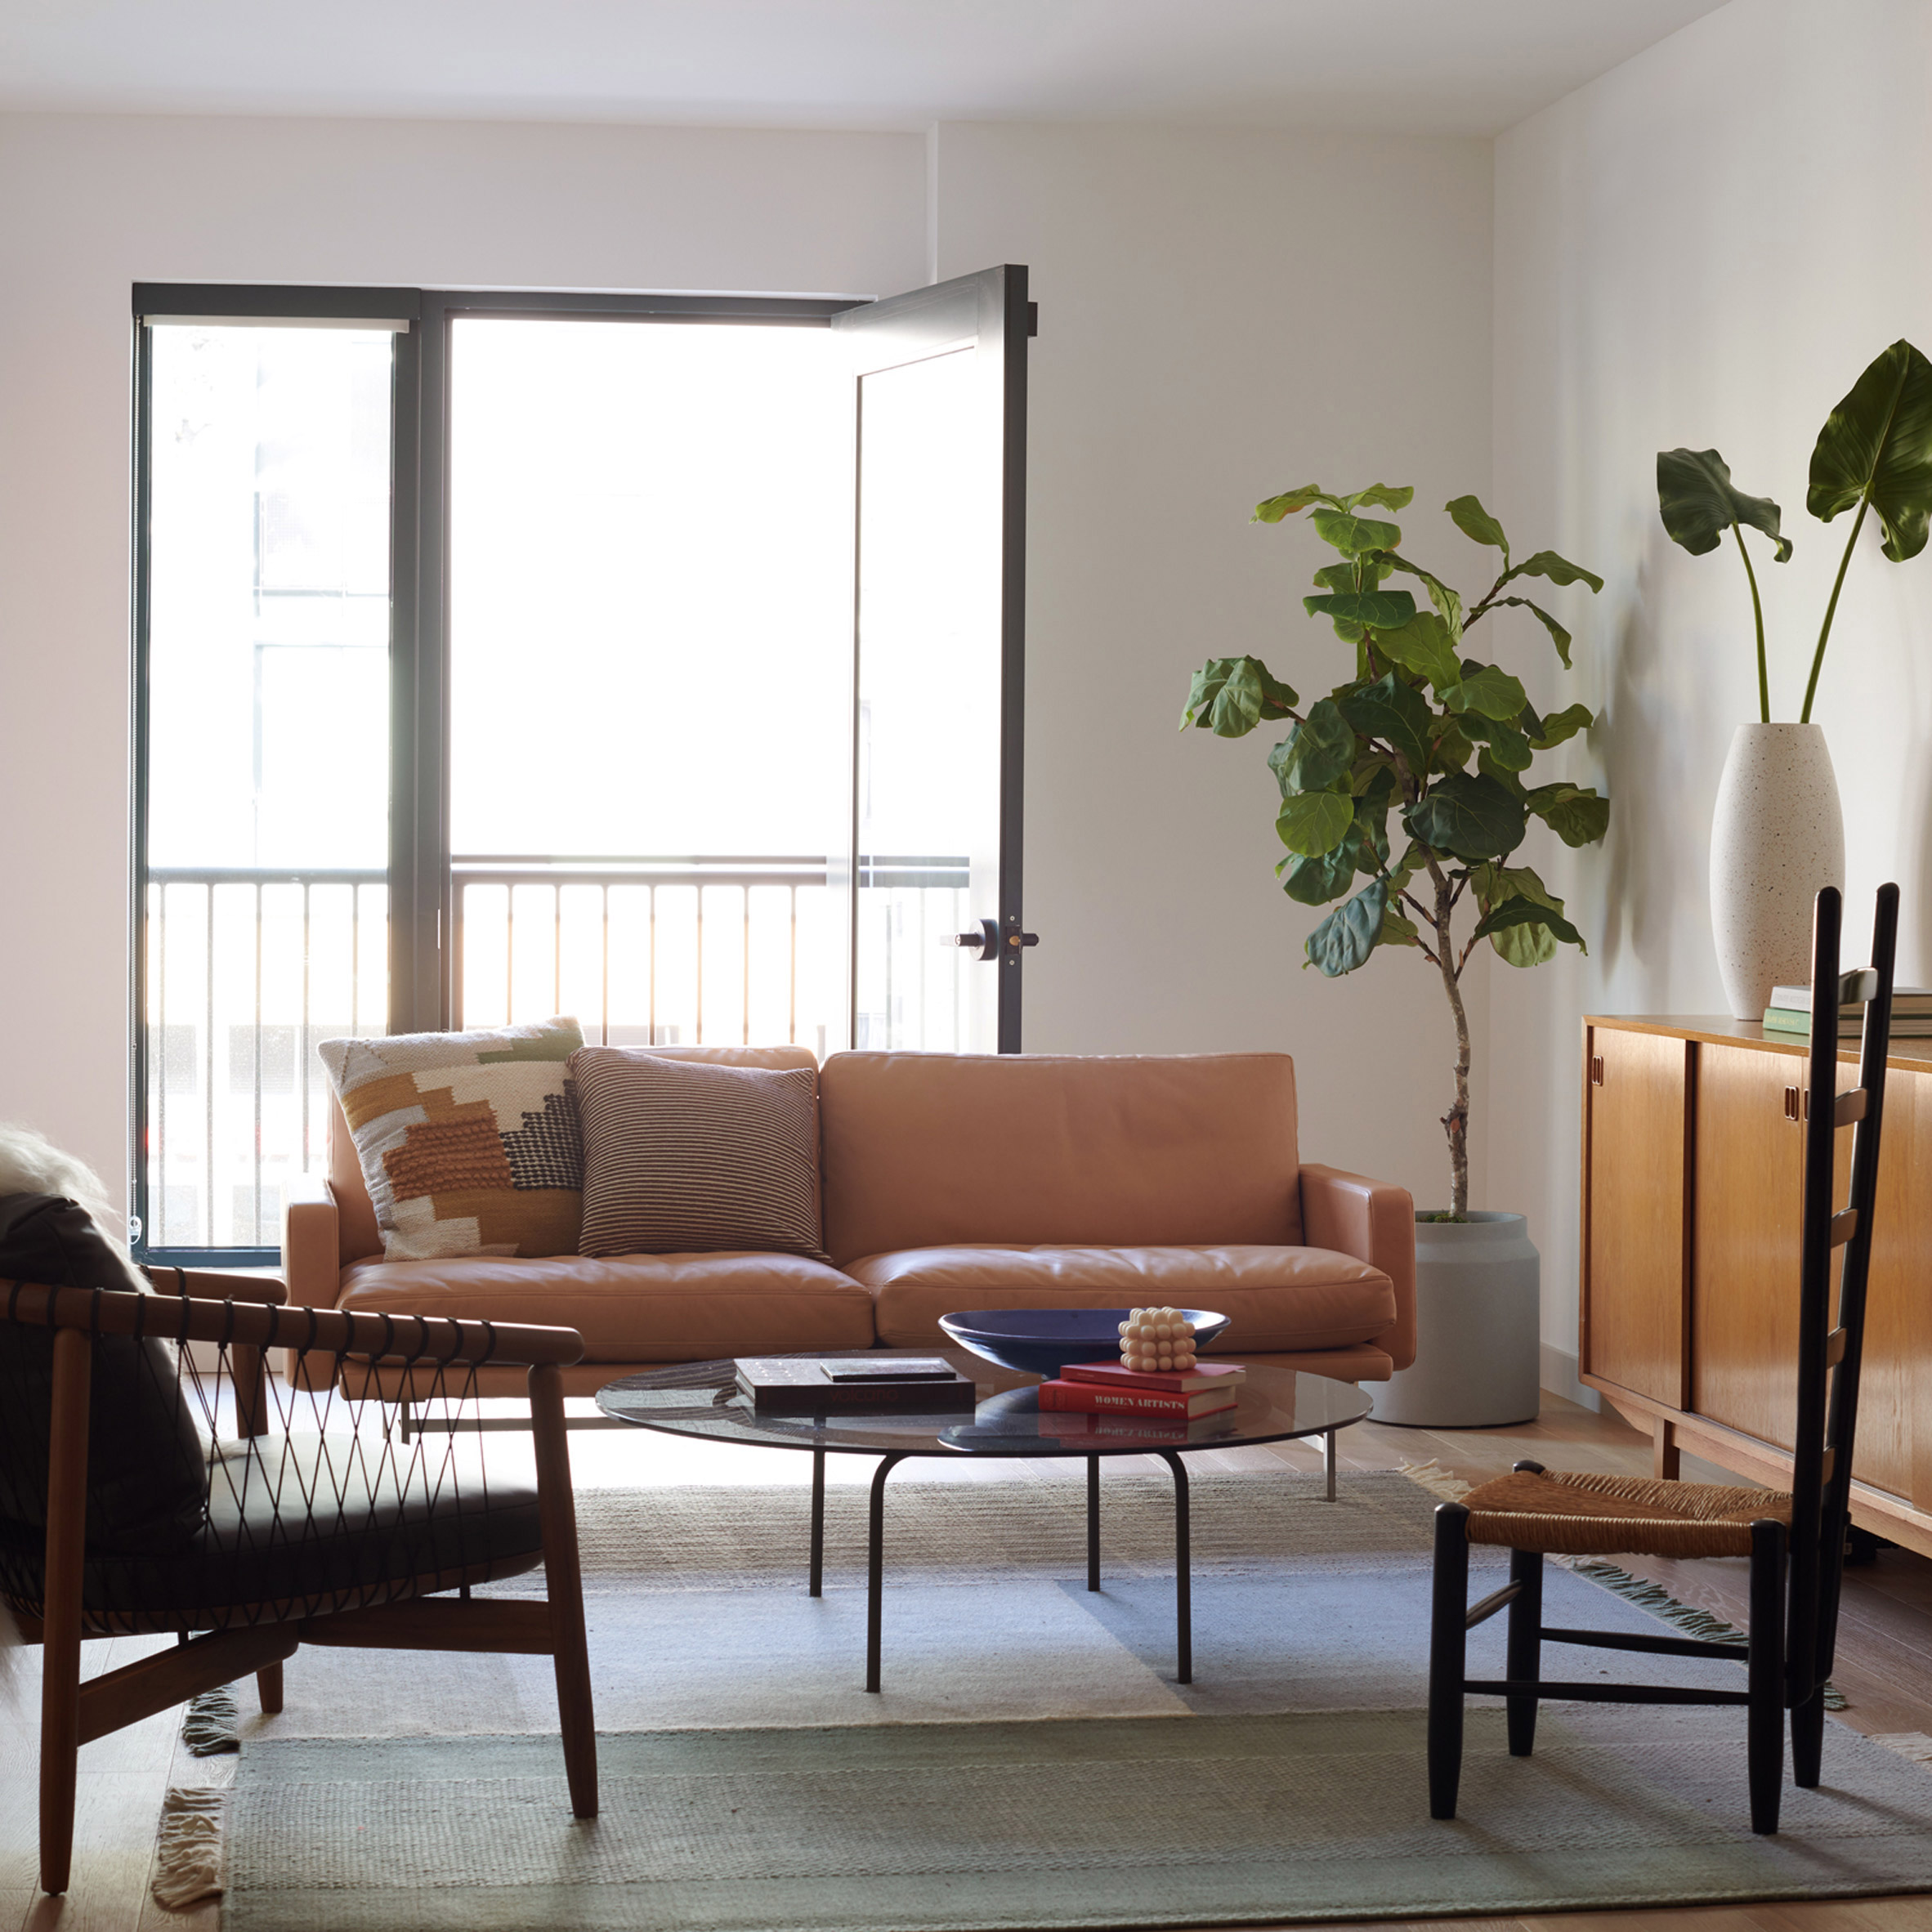 El Centro by Commune and VTBS